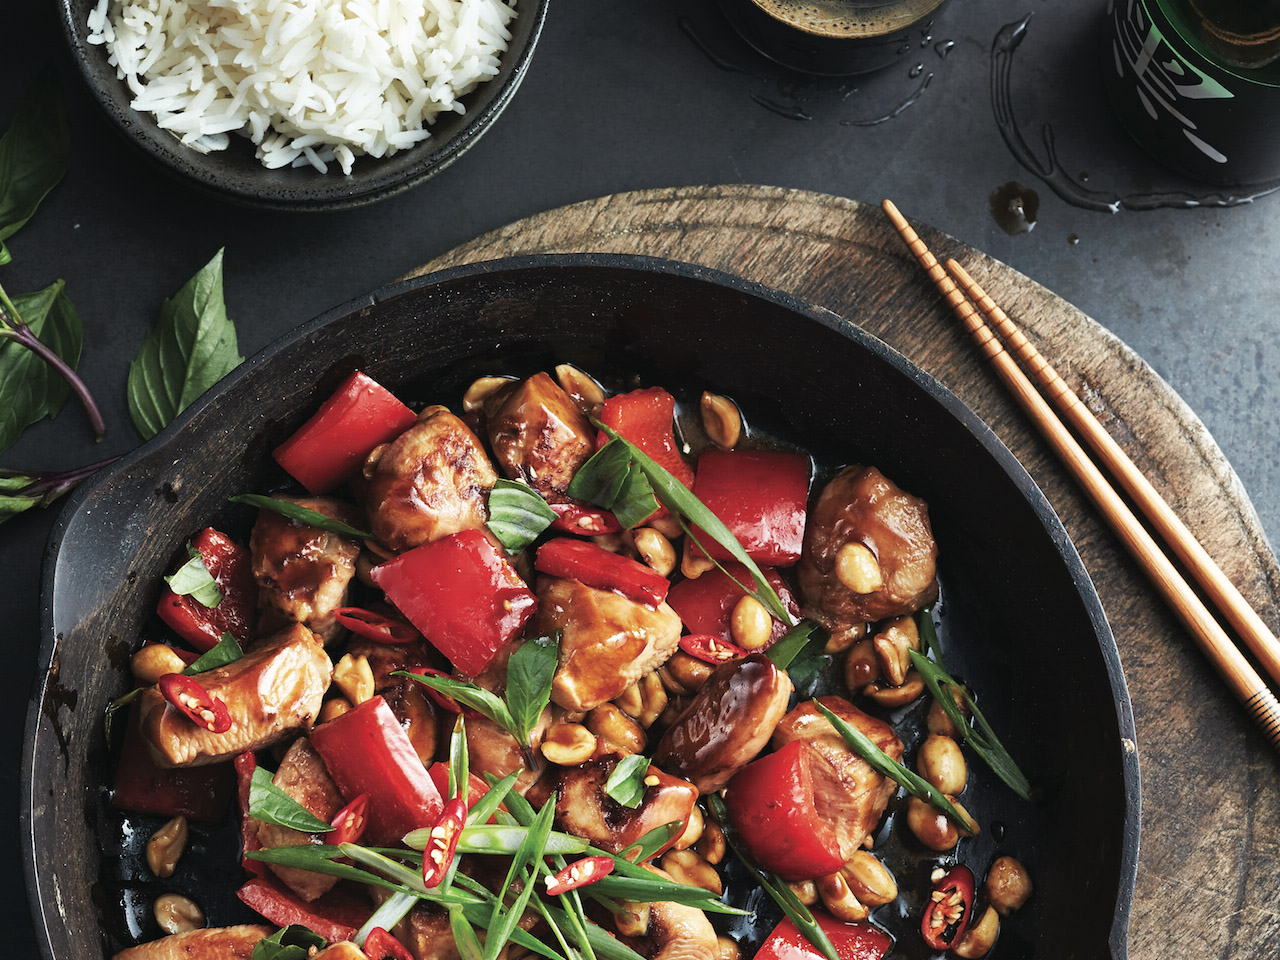 Chicken stir fry recipe - Kung Pao chicken